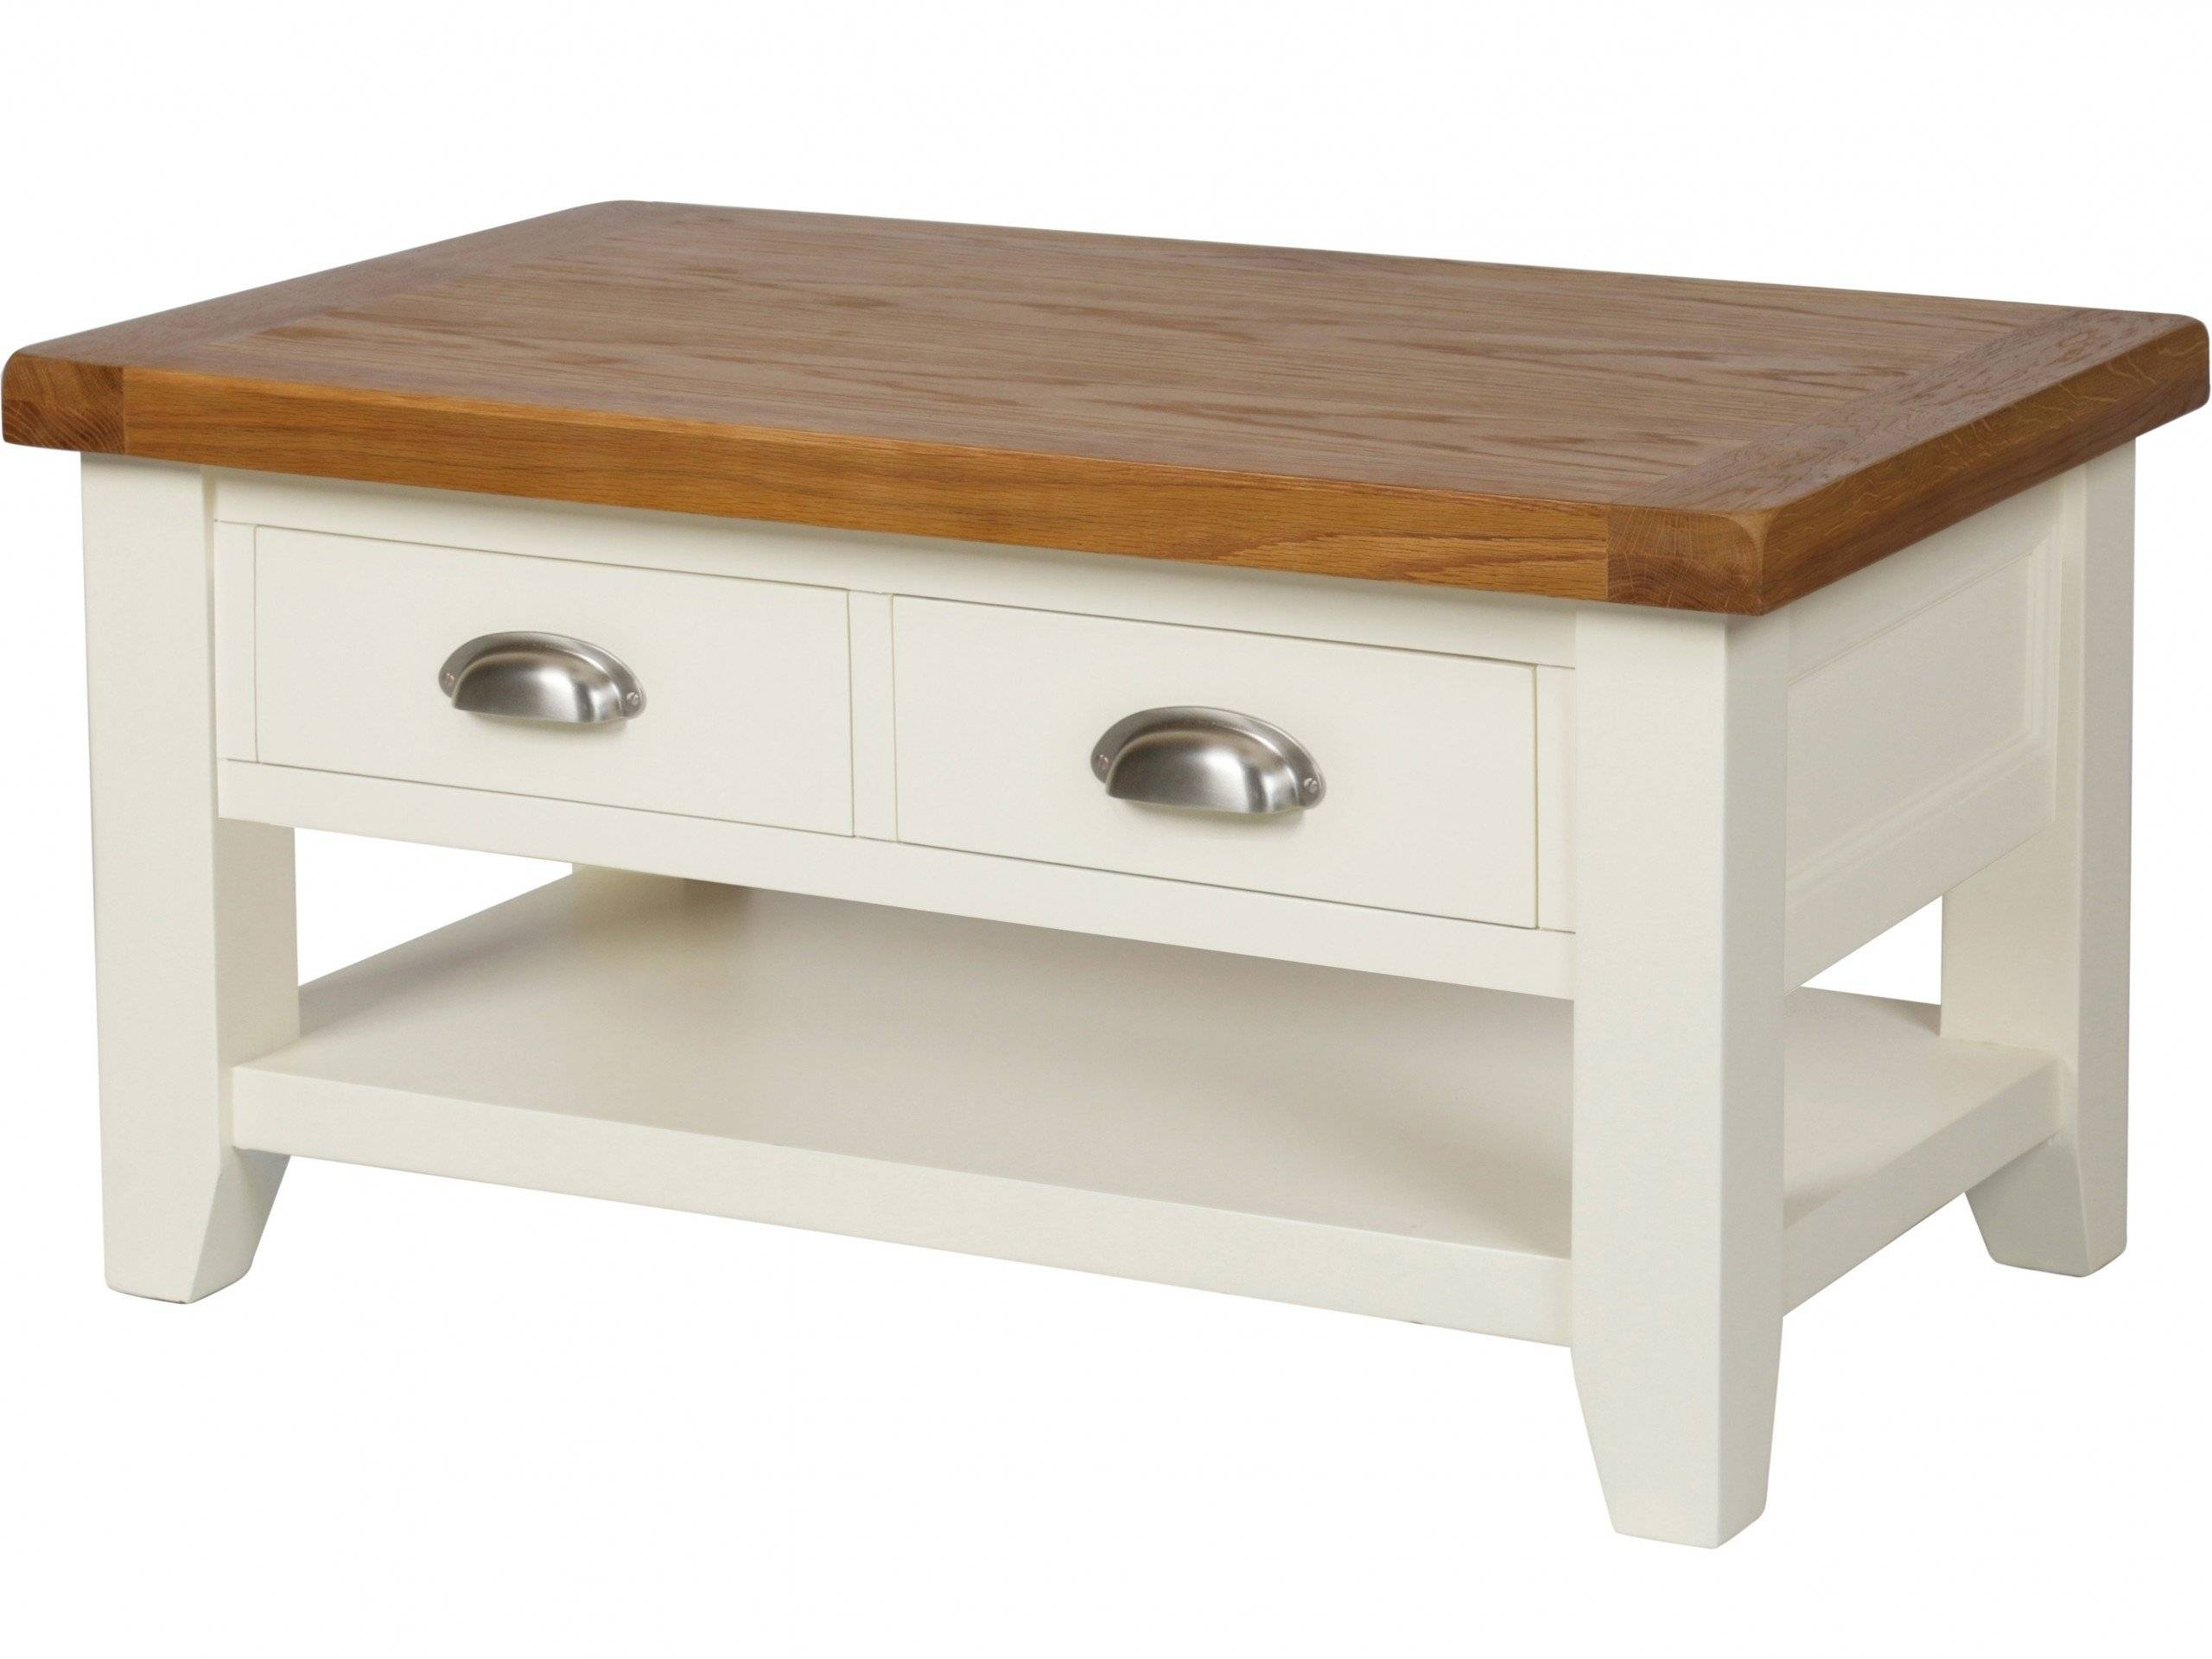 Coffee Table: Inspiring Country Coffee Table Design Ideas White in Country Coffee Tables (Image 9 of 30)